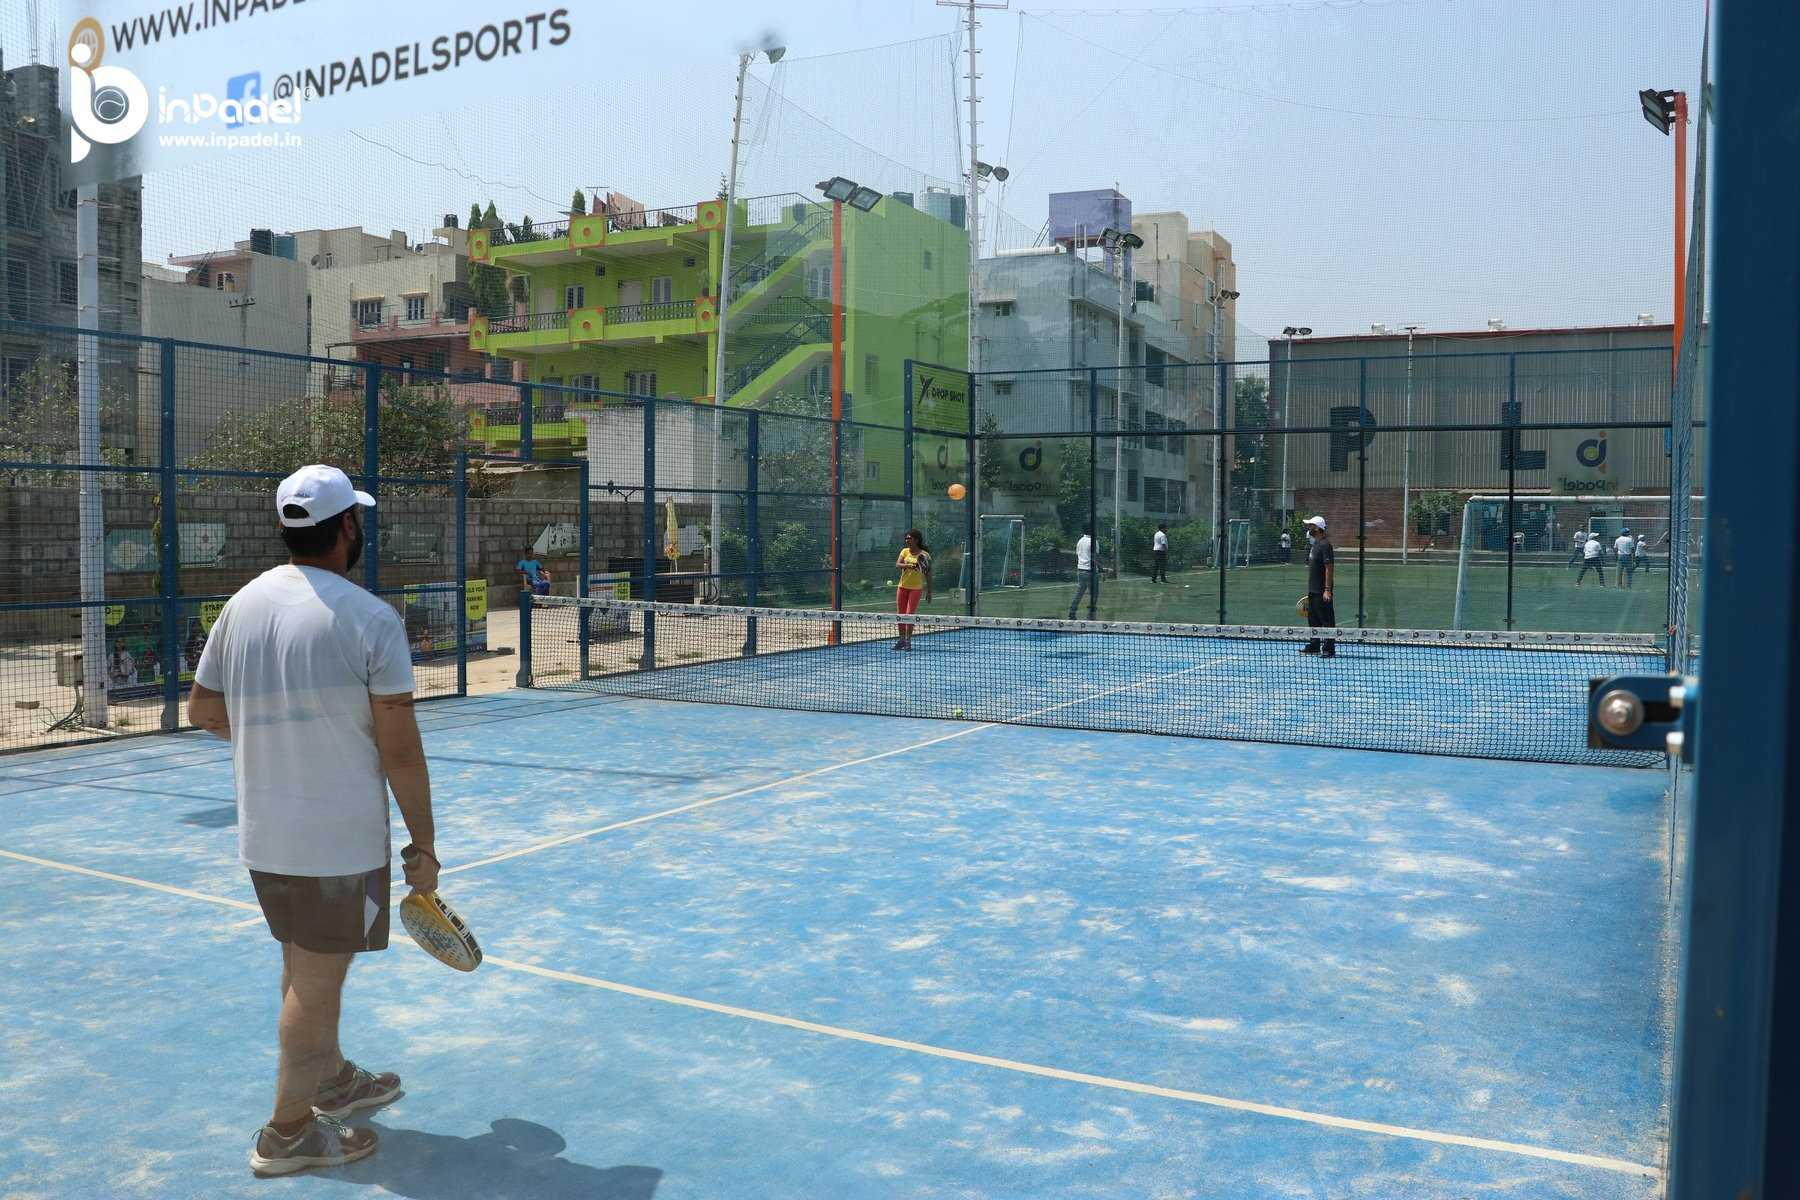 InPadel 1Yr Celebration of Padel in INDIA - Padel - Padel India (13)